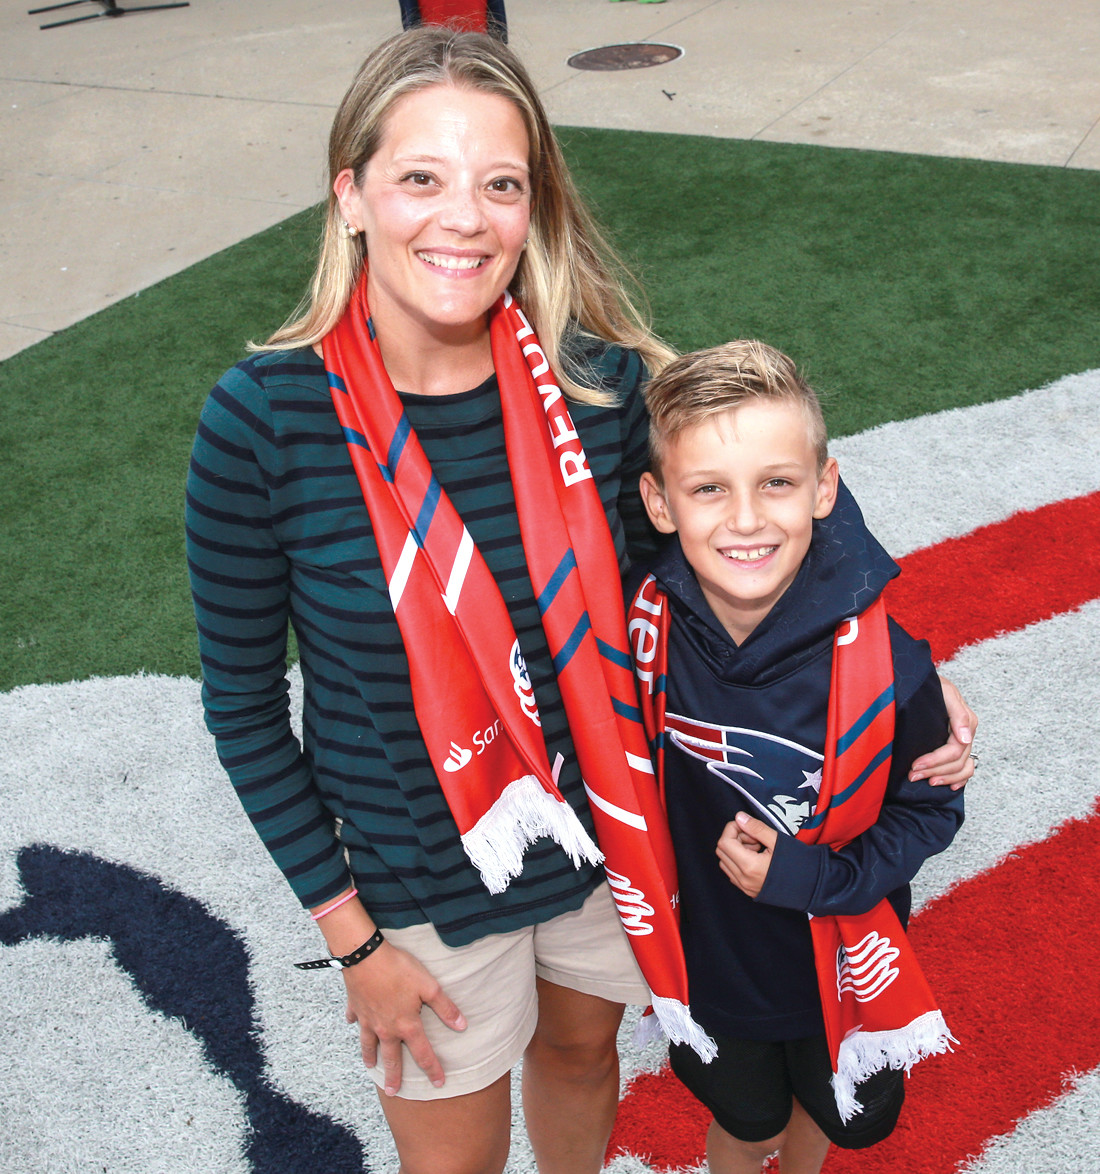 APPRECIATED: Amanda Cronin of Walpole, Mass., a Ferri Middle School teacherm was joined by her nephew Andrew Veres, 8, of East Longmeadow, MA before being honored during Santander Bank's Teacher Appreciation Day at the New England Revolution game on August 11.